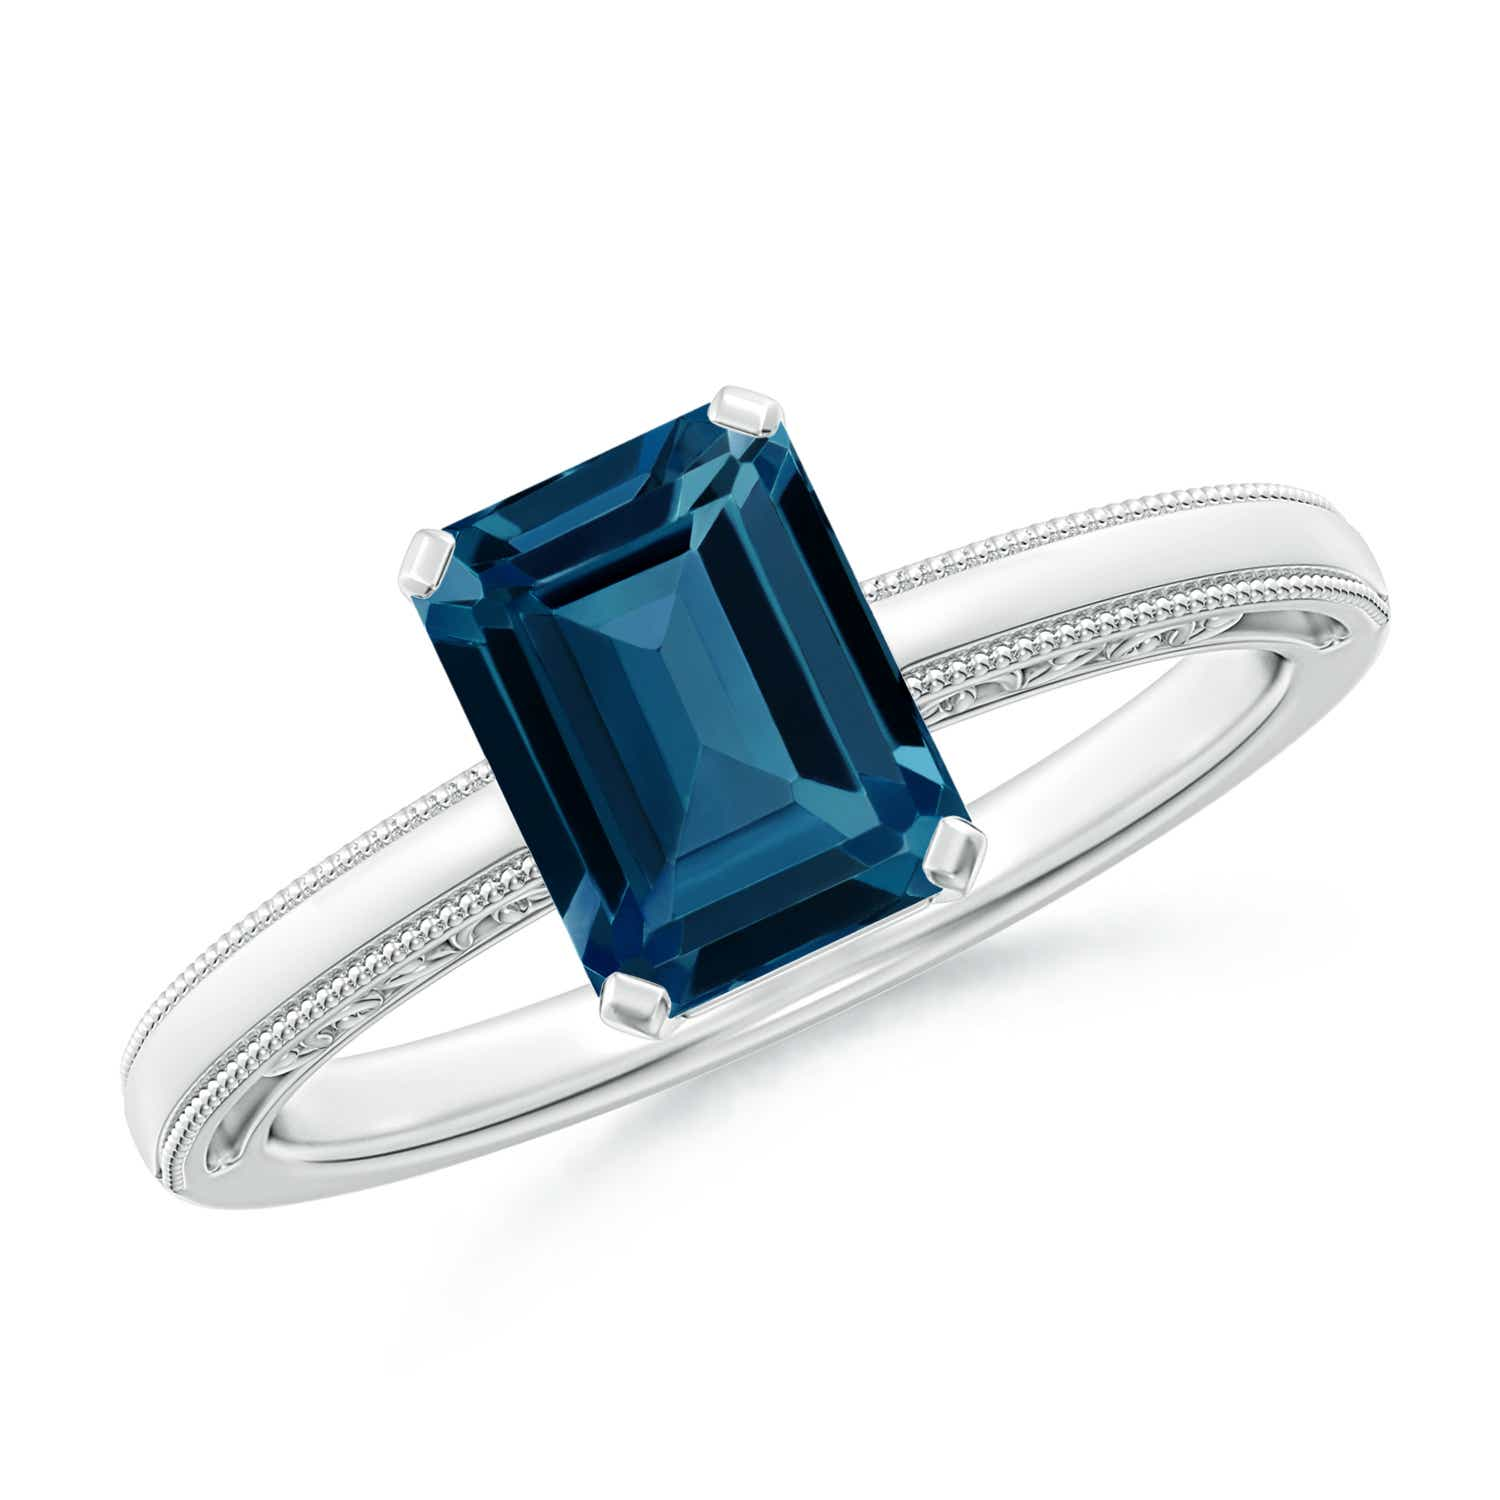 sterling silver solitaire ring London blue topaz engagement ring emerald cut